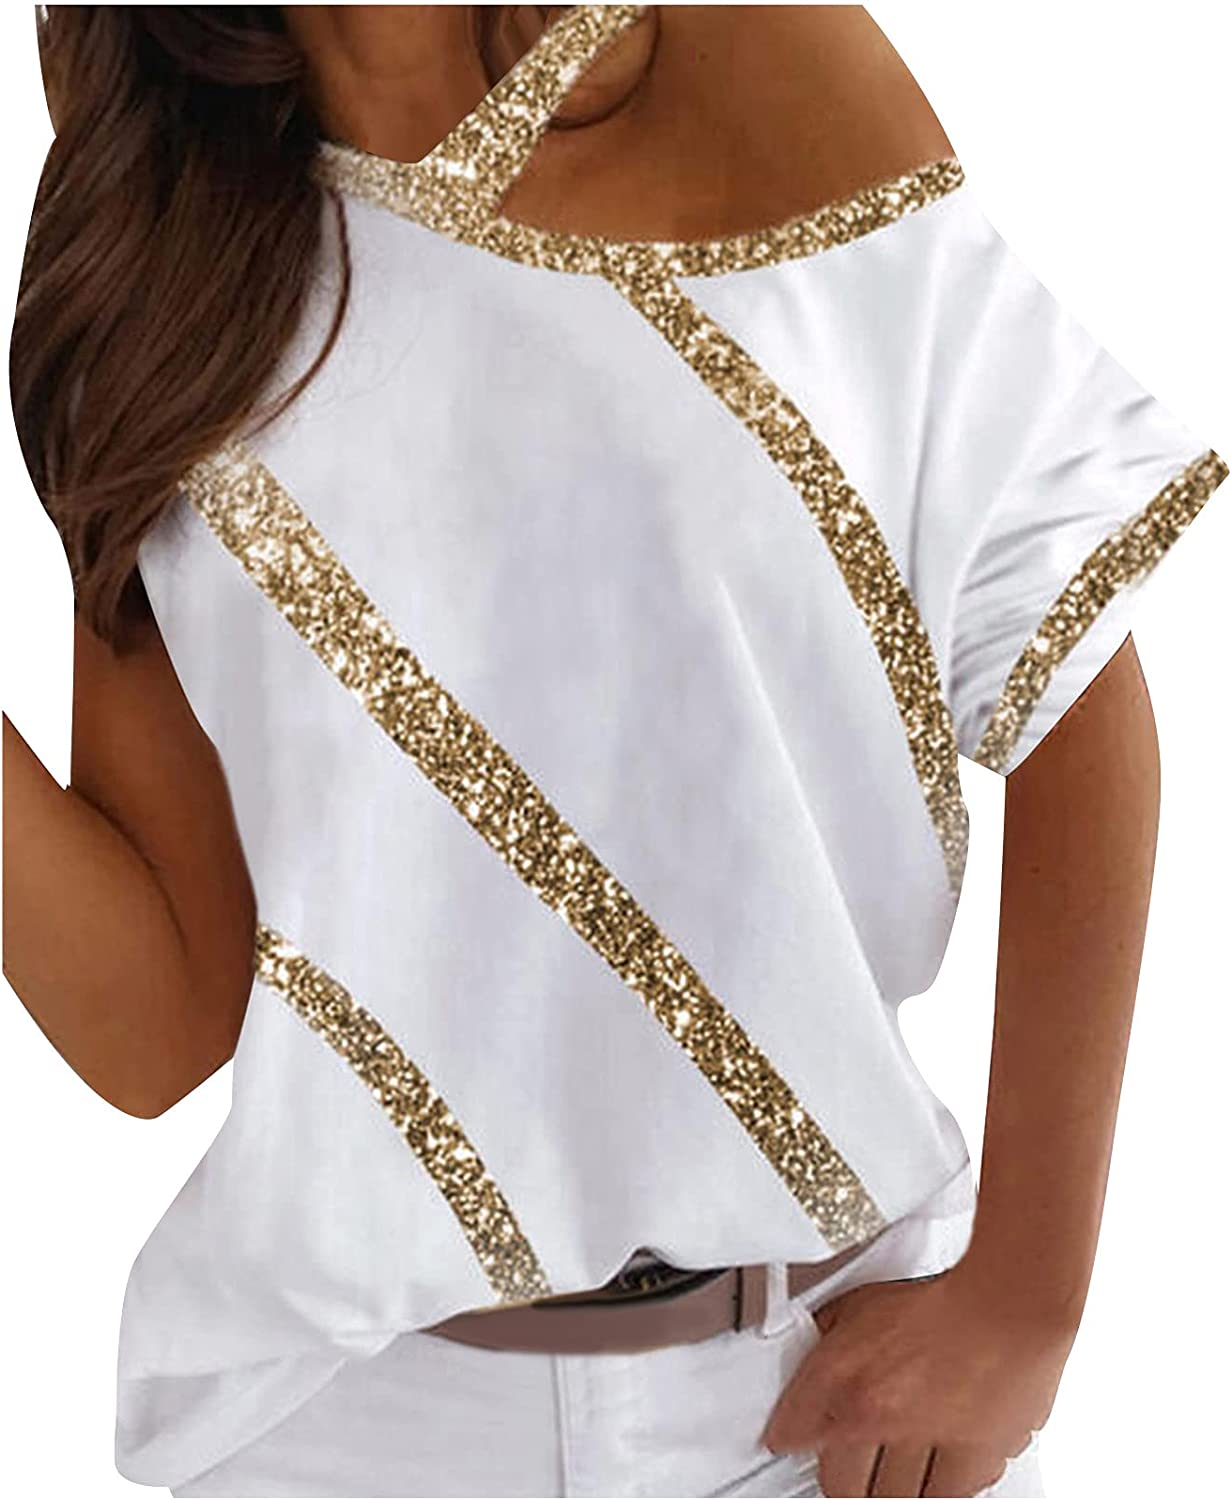 Womens Summer Tops Ladies Casual Printed Off Shoulder Halterneck Short-Sleeved T-Shirt Top Blouses for Women Fashion